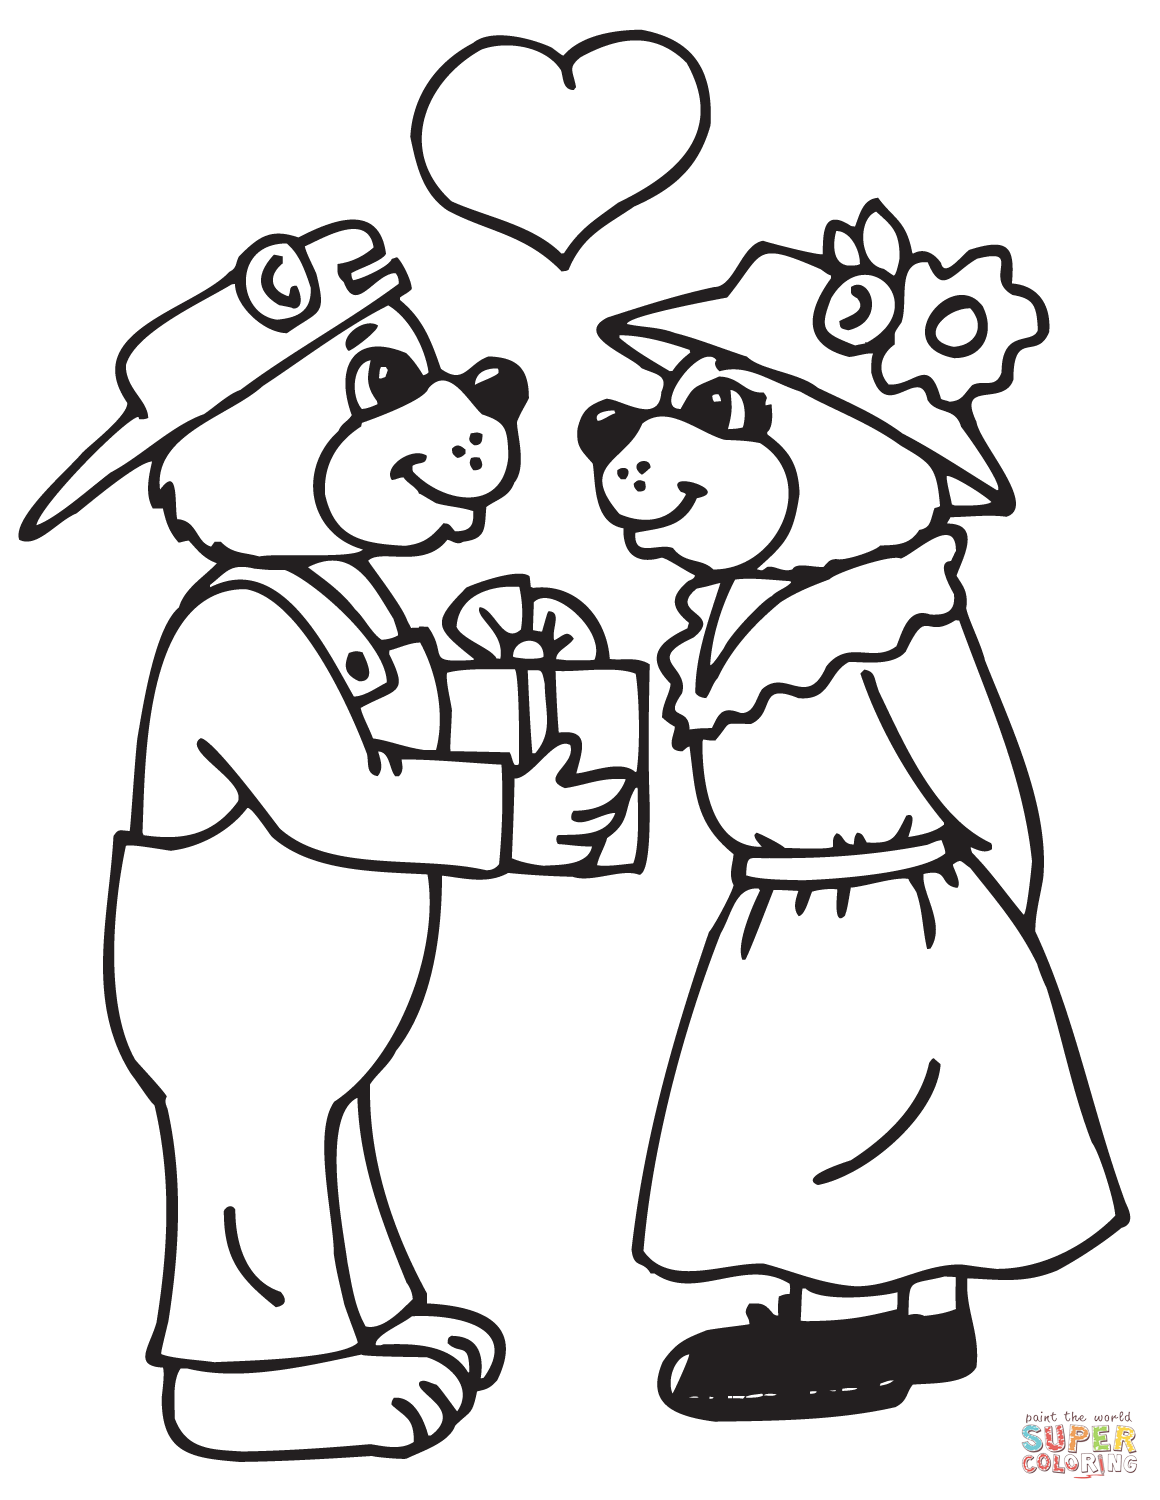 Bears Couple Coloring Page Free Printable Coloring Pages